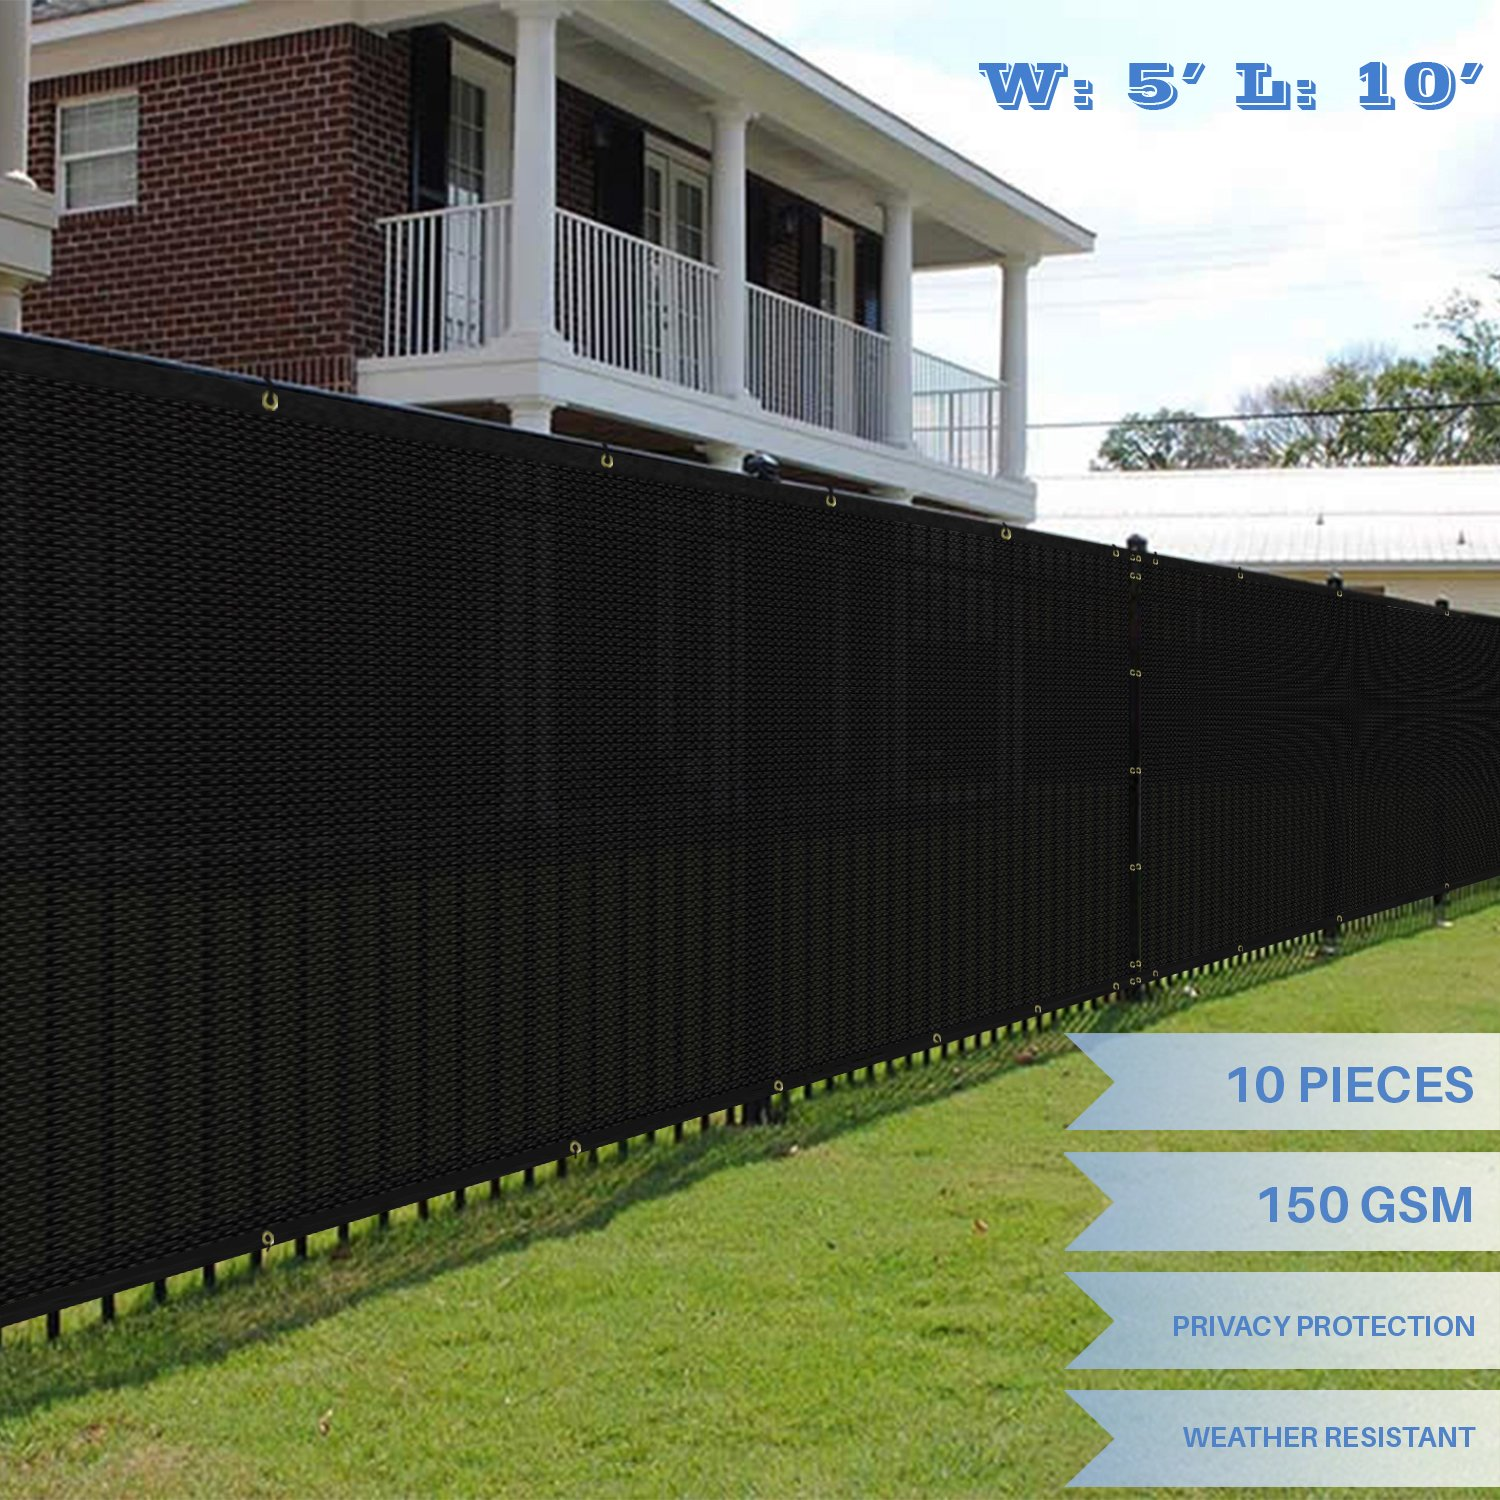 E&K Sunrise 5' x 10' Black Fence Privacy Screen, Commercial Outdoor Backyard Shade Windscreen Mesh Fabric 3 Years Warranty (Customized Sizes Available) - Set of 10 by E&K Sunrise